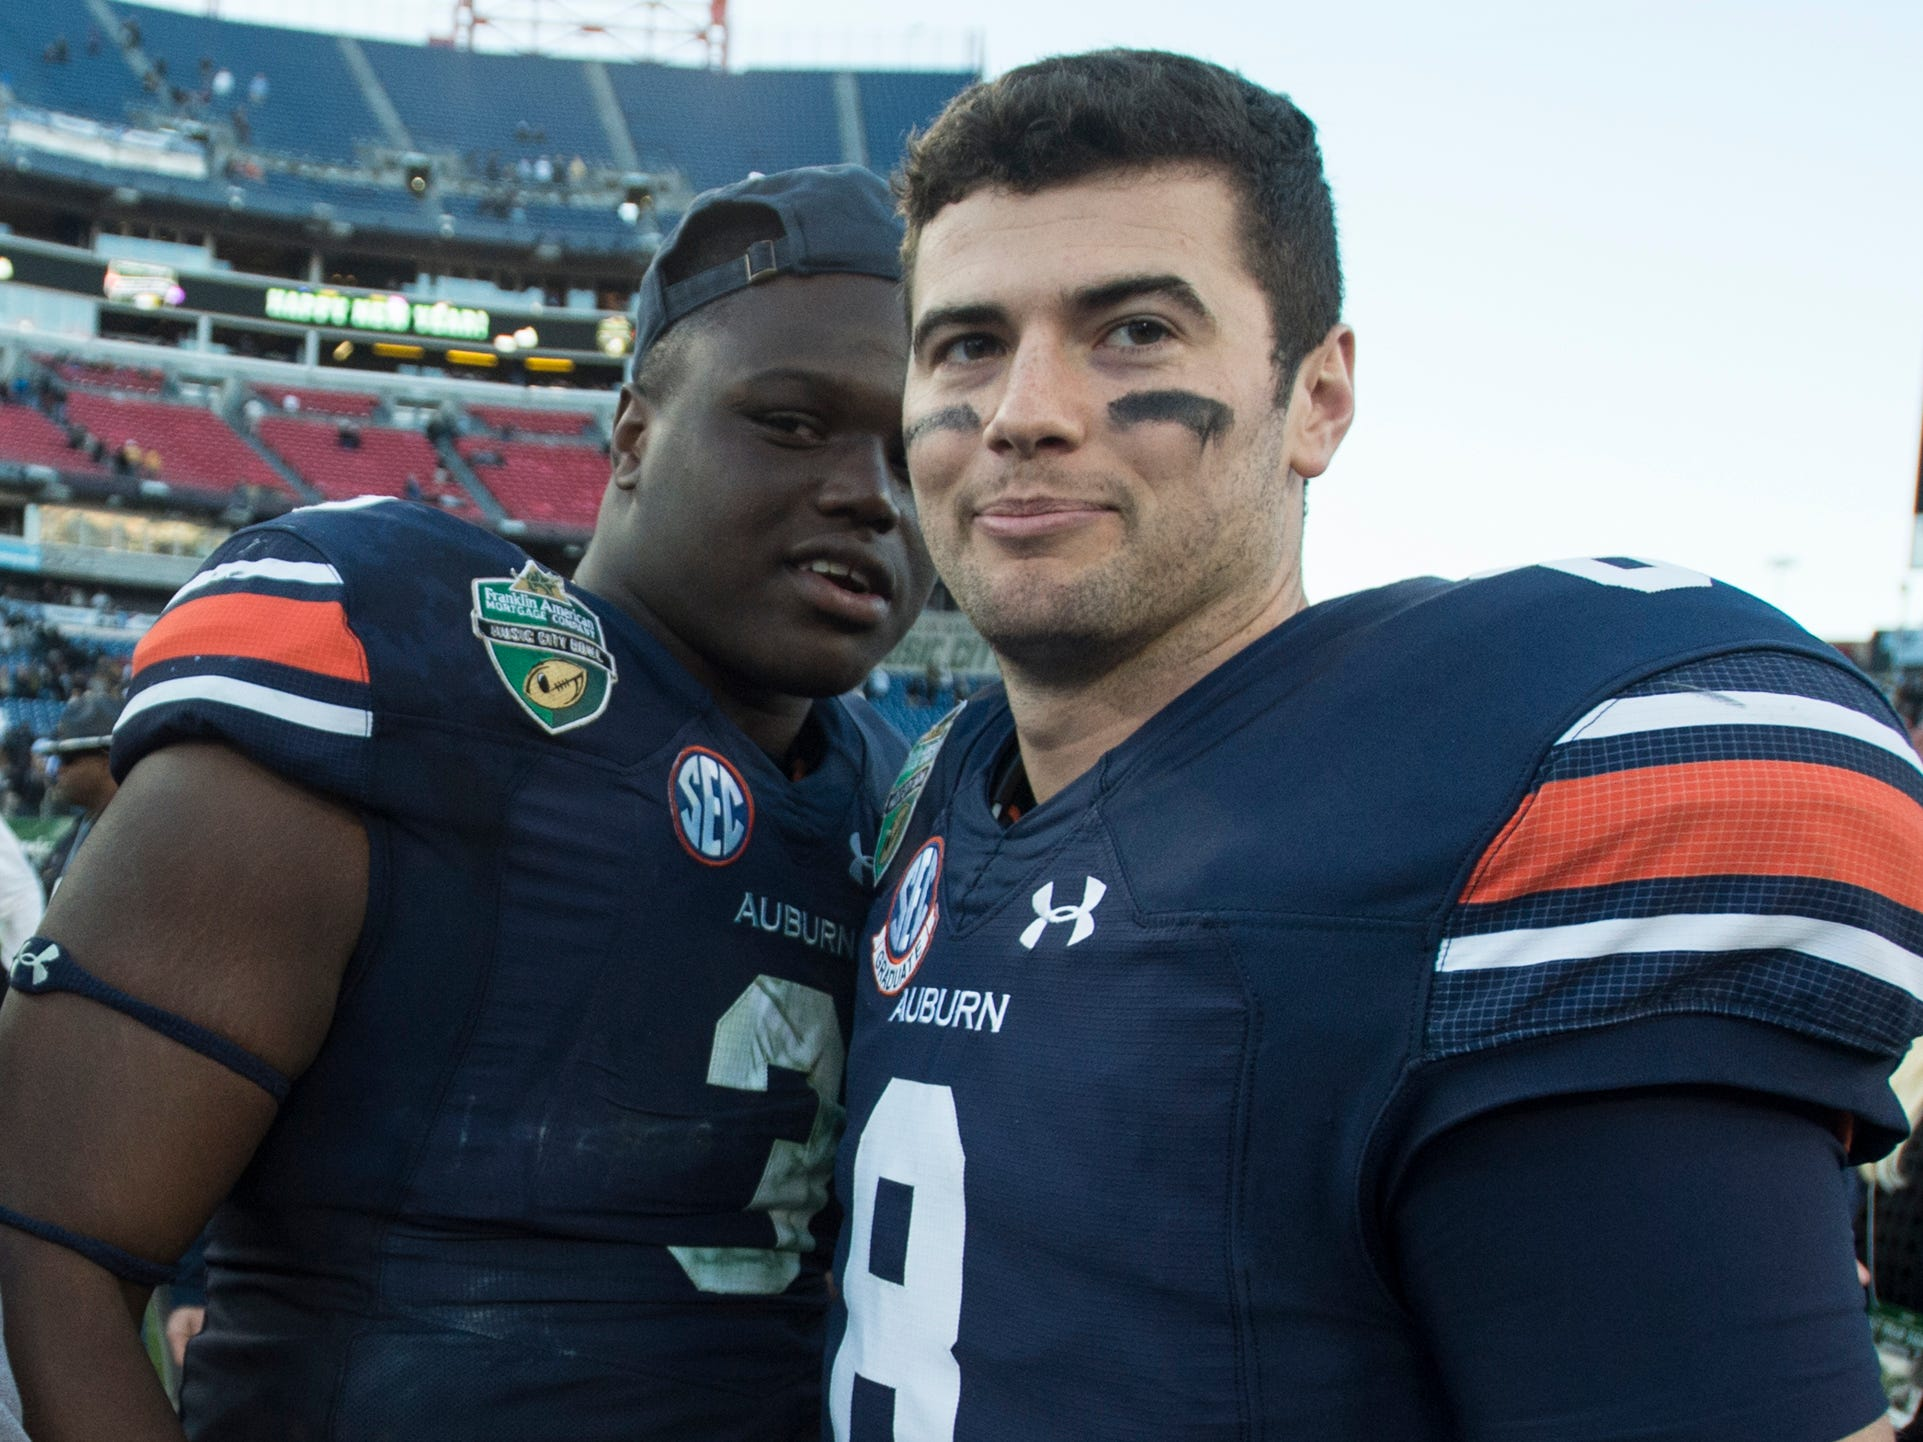 Auburn defensive lineman Marlon Davidson (3) and quarterback Jarrett Stidham (8) hug at the end of the game during the Music City Bowl at Nissan Stadium in Nashville, Tenn., on Friday, Dec. 28, 2018. Auburn defeated Purdue 63-14.